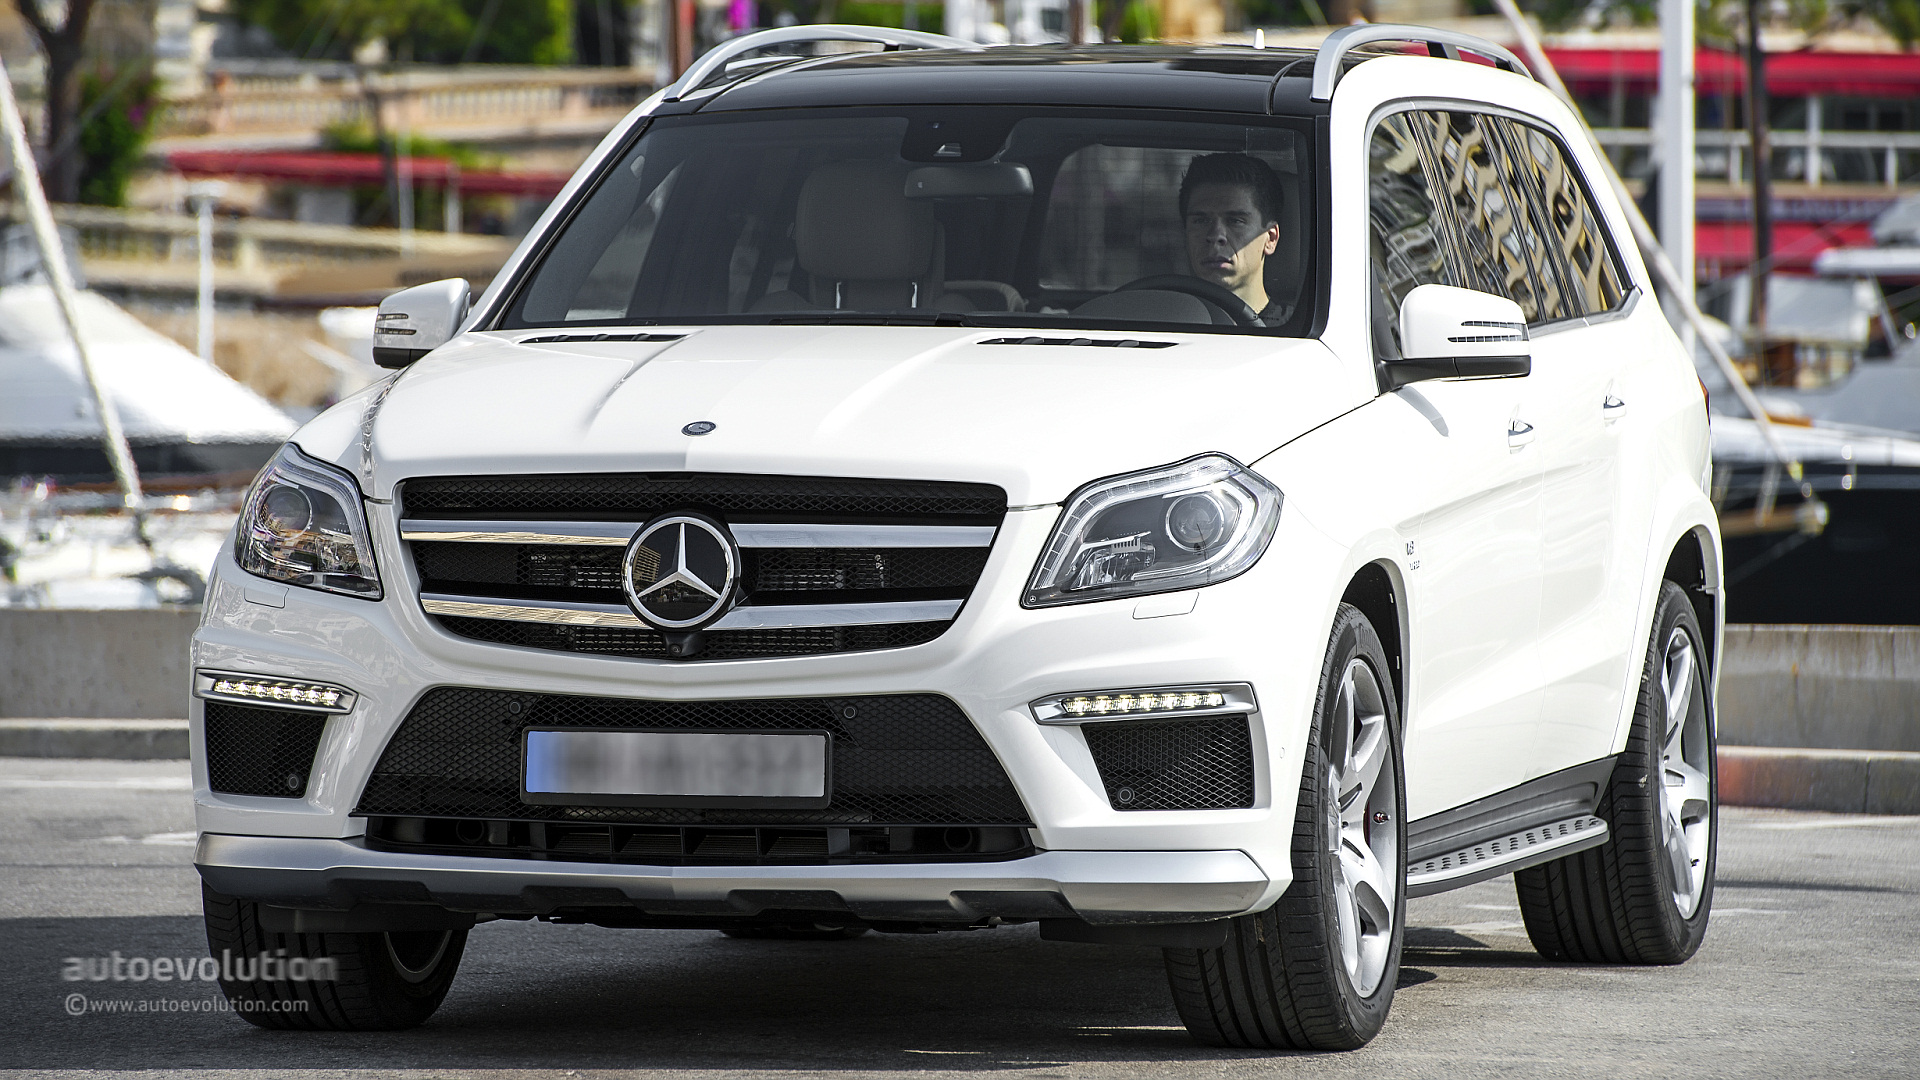 2019 Mercedes Benz GL63 AMG photo - 6